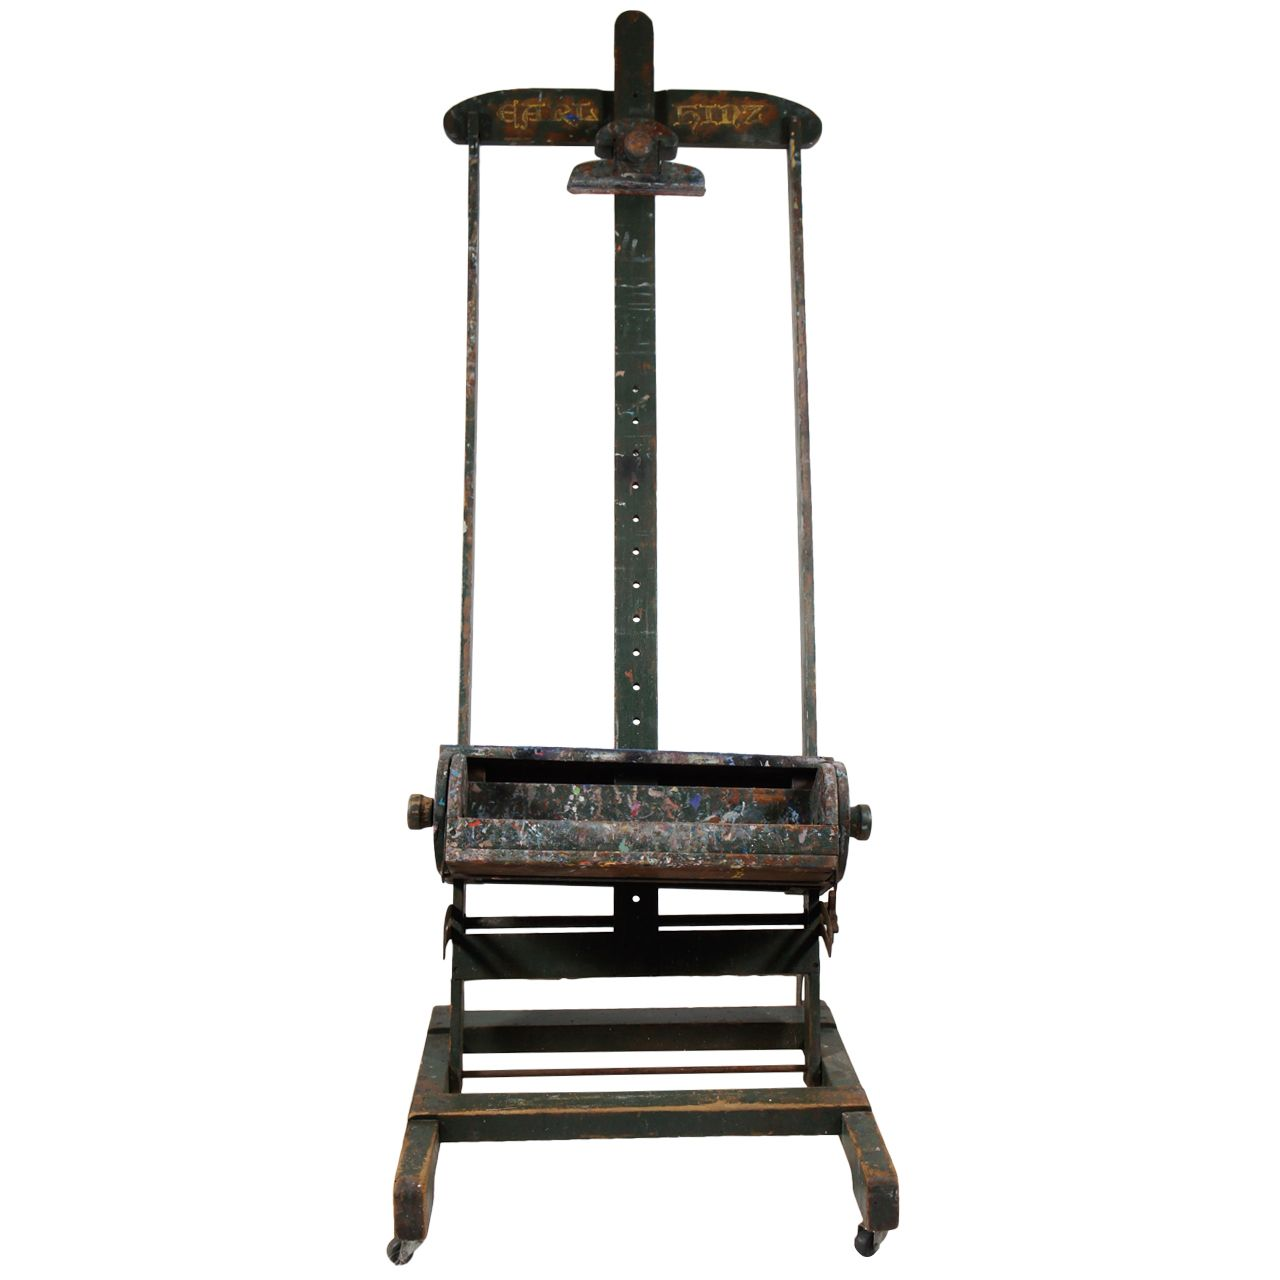 Antique Adjustable Artists Easel/TV Media Stand From a